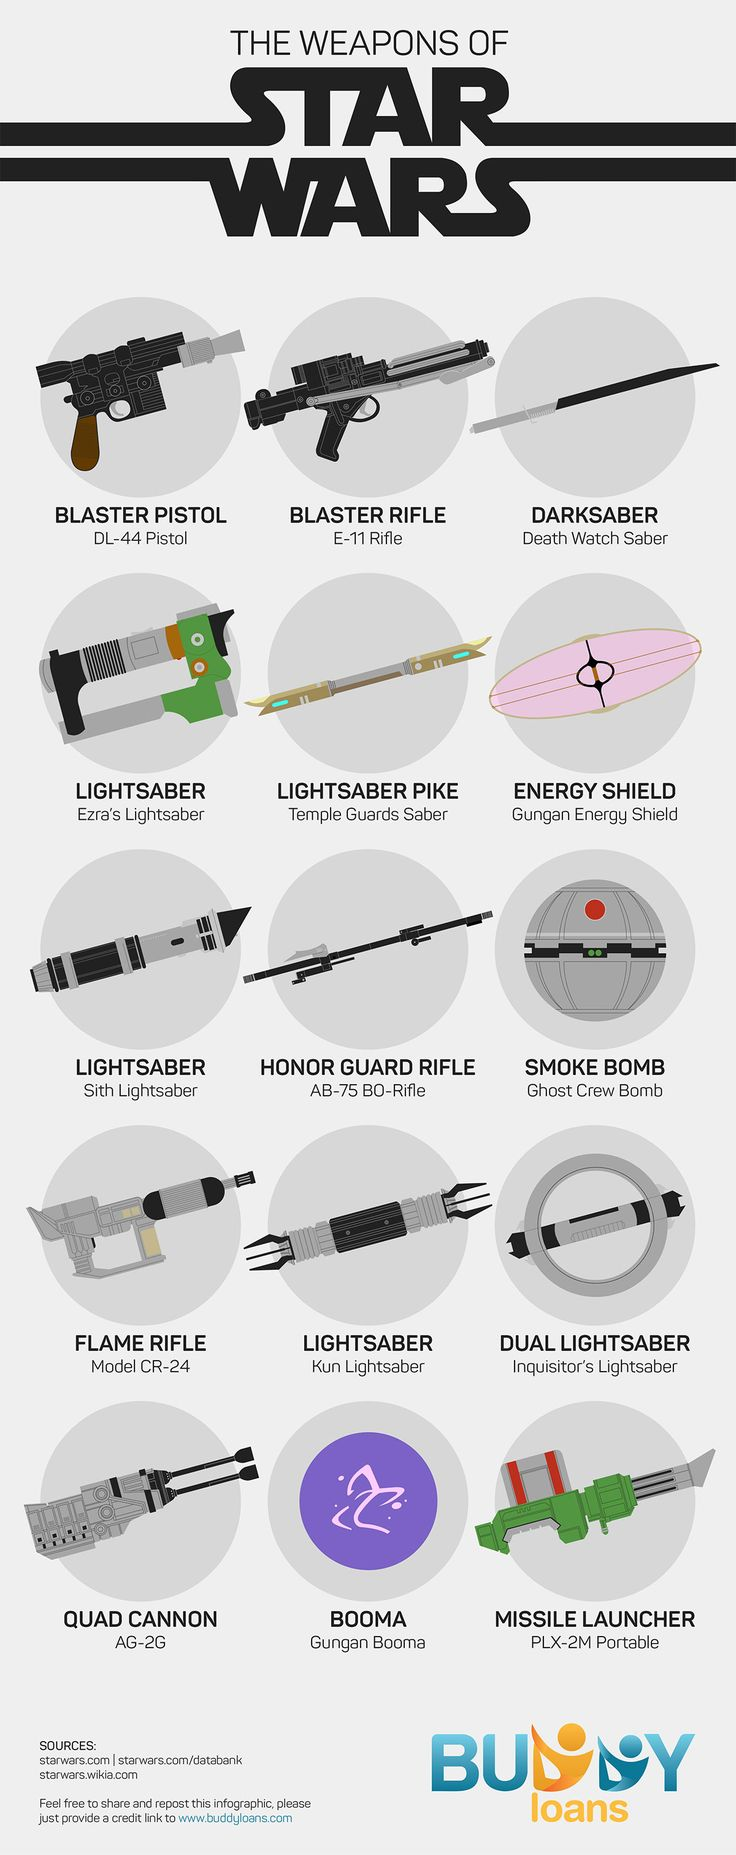 Star Wars VII is yet to release, Let's have a look at the weapons used in th...